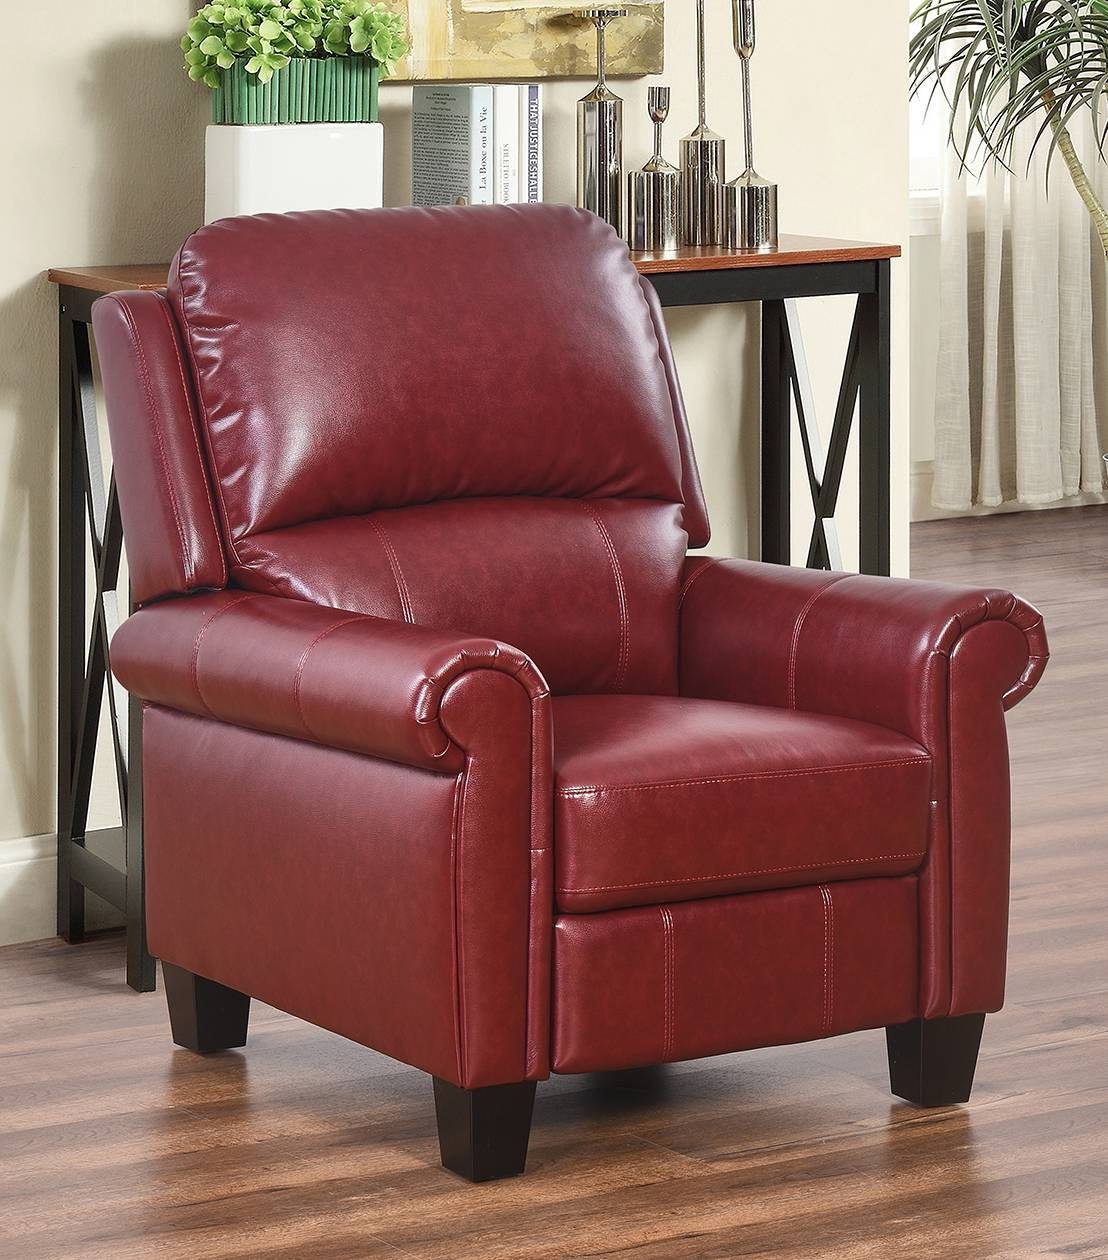 Recliners Throughout Abbyson Recliners (View 2 of 15)